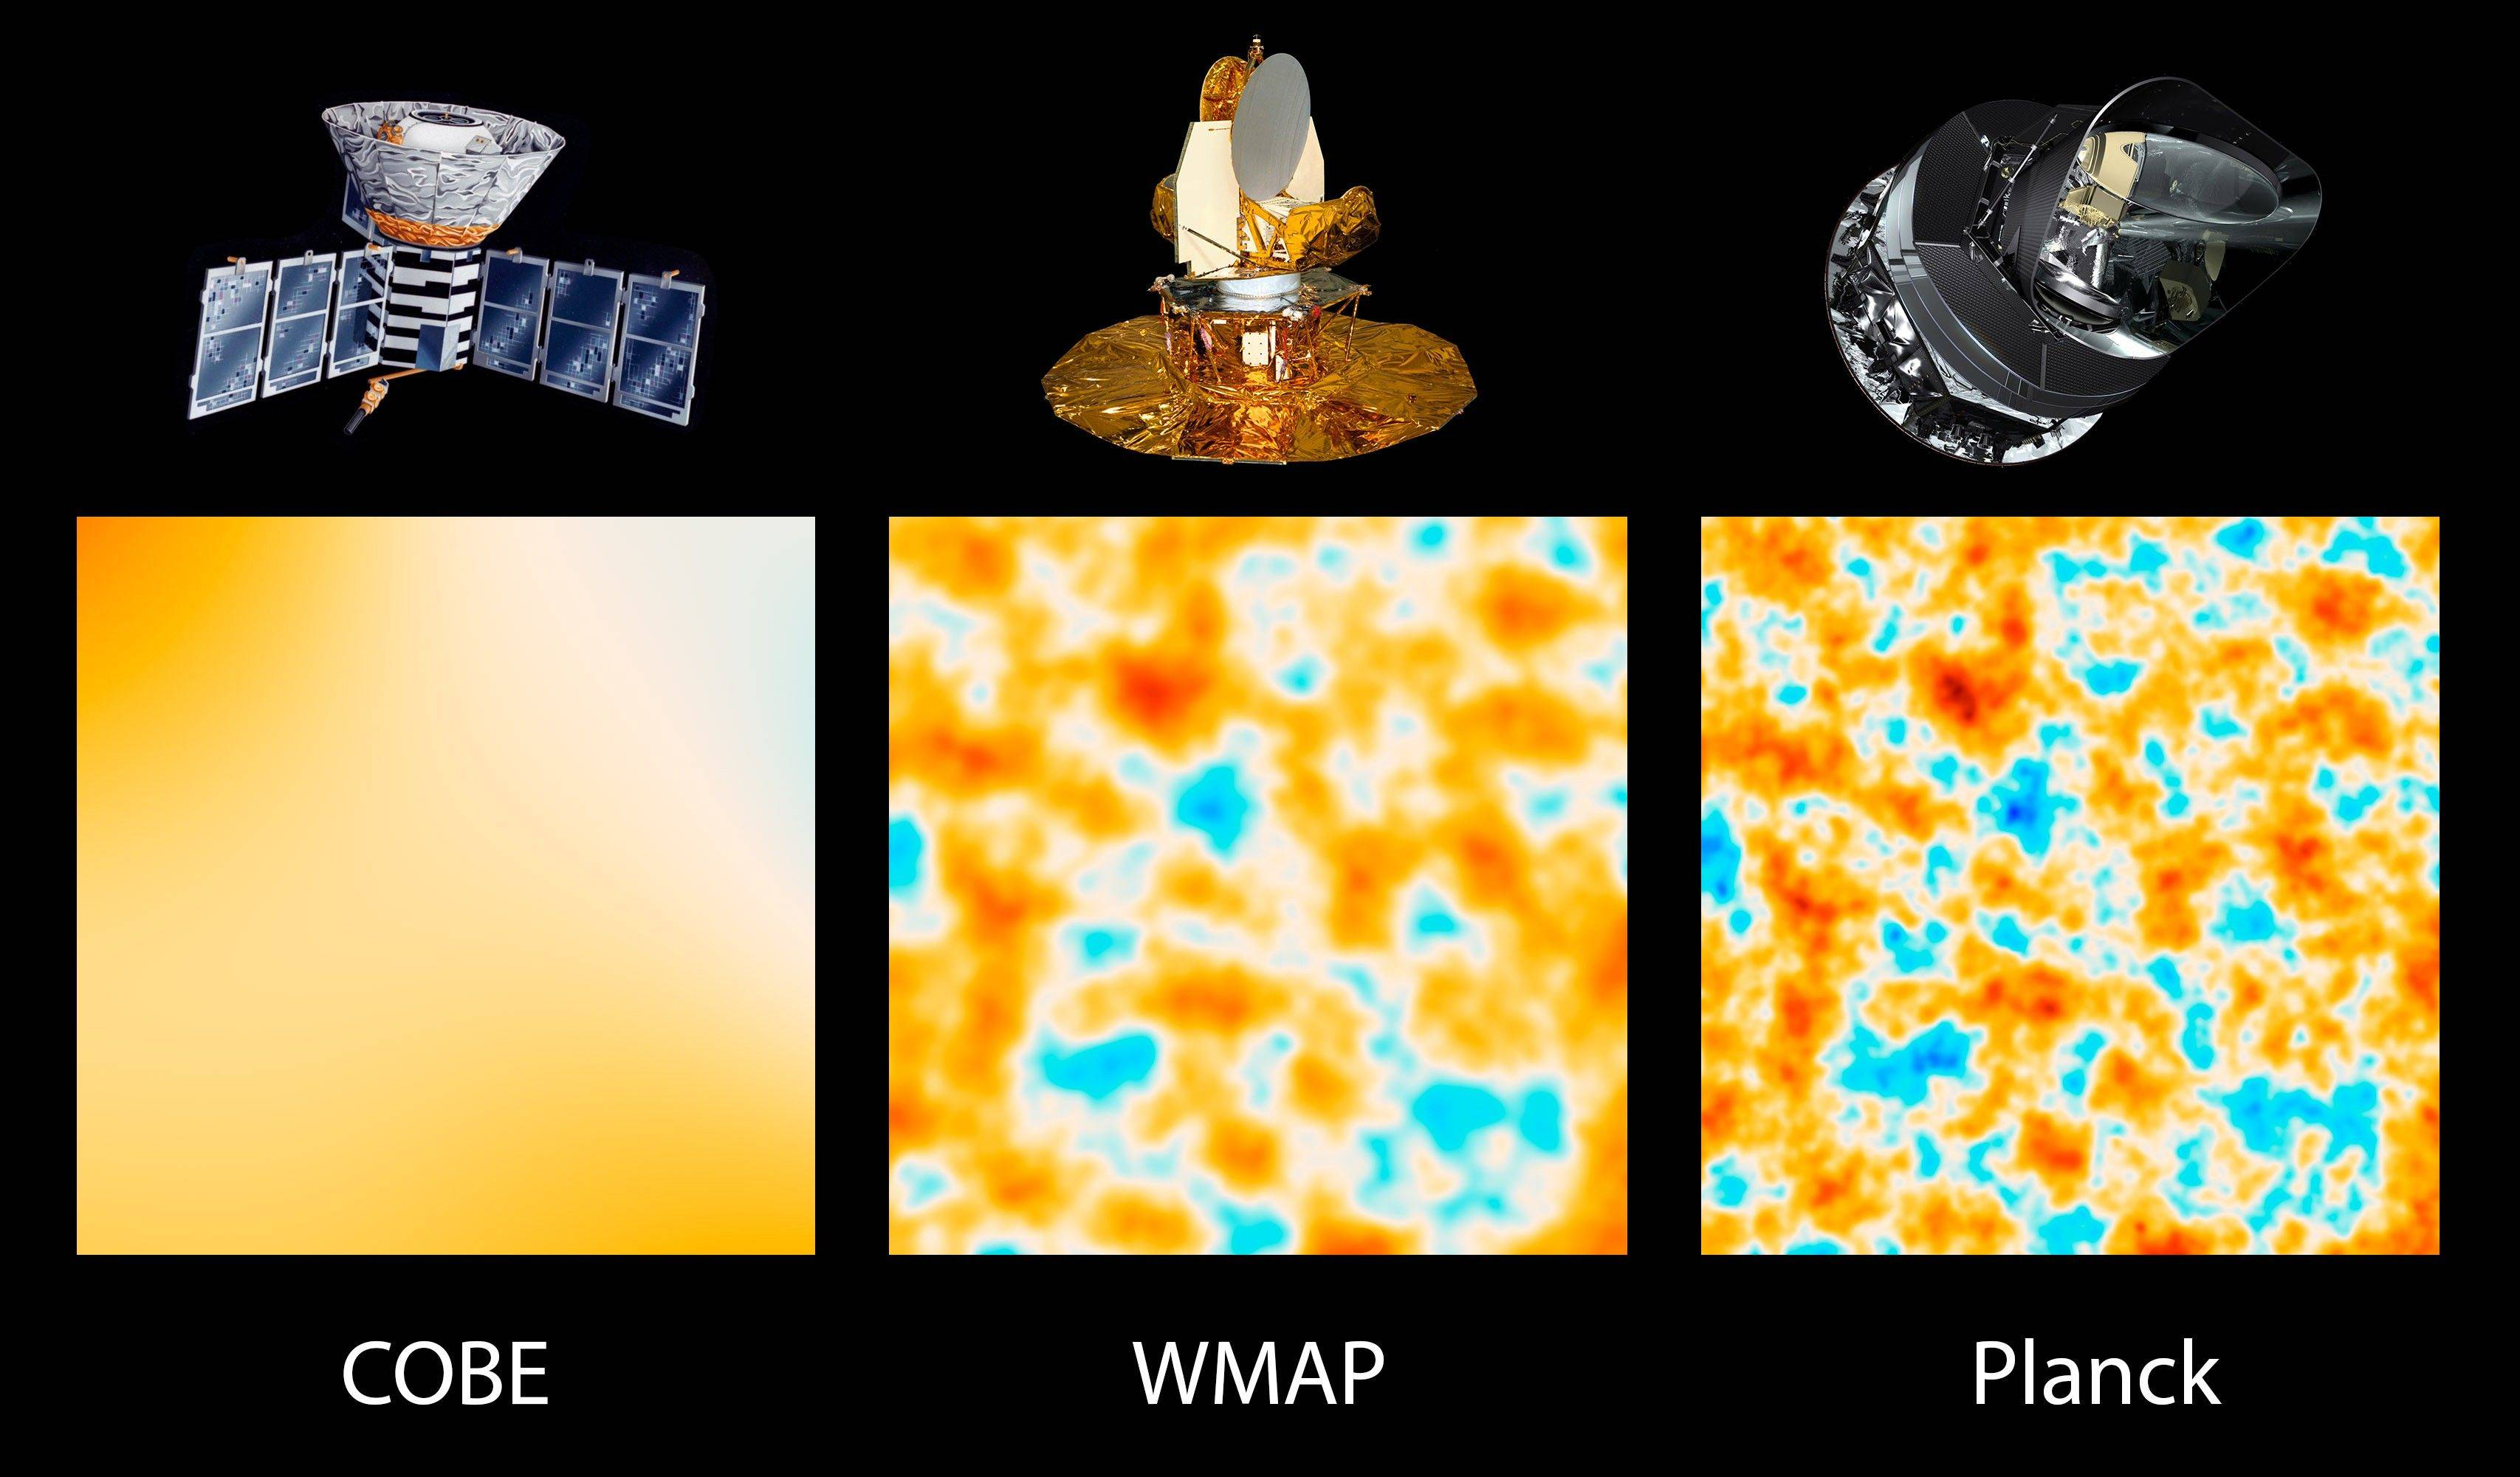 This image released on Thursday March 21, 2013 by the European Space Agency (ESA) in Paris shows from left , the evolution of satellites designed to measure ancient light left over from the Big Bang that created our universe 13.8 billion years ago. Called the cosmic microwave background, this light reveals secrets of the universe's origins, fate, ingredients and more. The three panels show 10-square-degree patches of all-sky maps created by space-based missions capable of detecting the cosmic microwave background. The first spacecraft, launched in 1989, is NASA's Cosmic Background Explorer, or COBE on left, the second satellite the Wilkinson Microwave Anisotropy Probe, or WMAP, centre, was launched in 2001 and the third satellite Planck, a European Space Agency mission with significant NASA contributions. was launched in 2009,